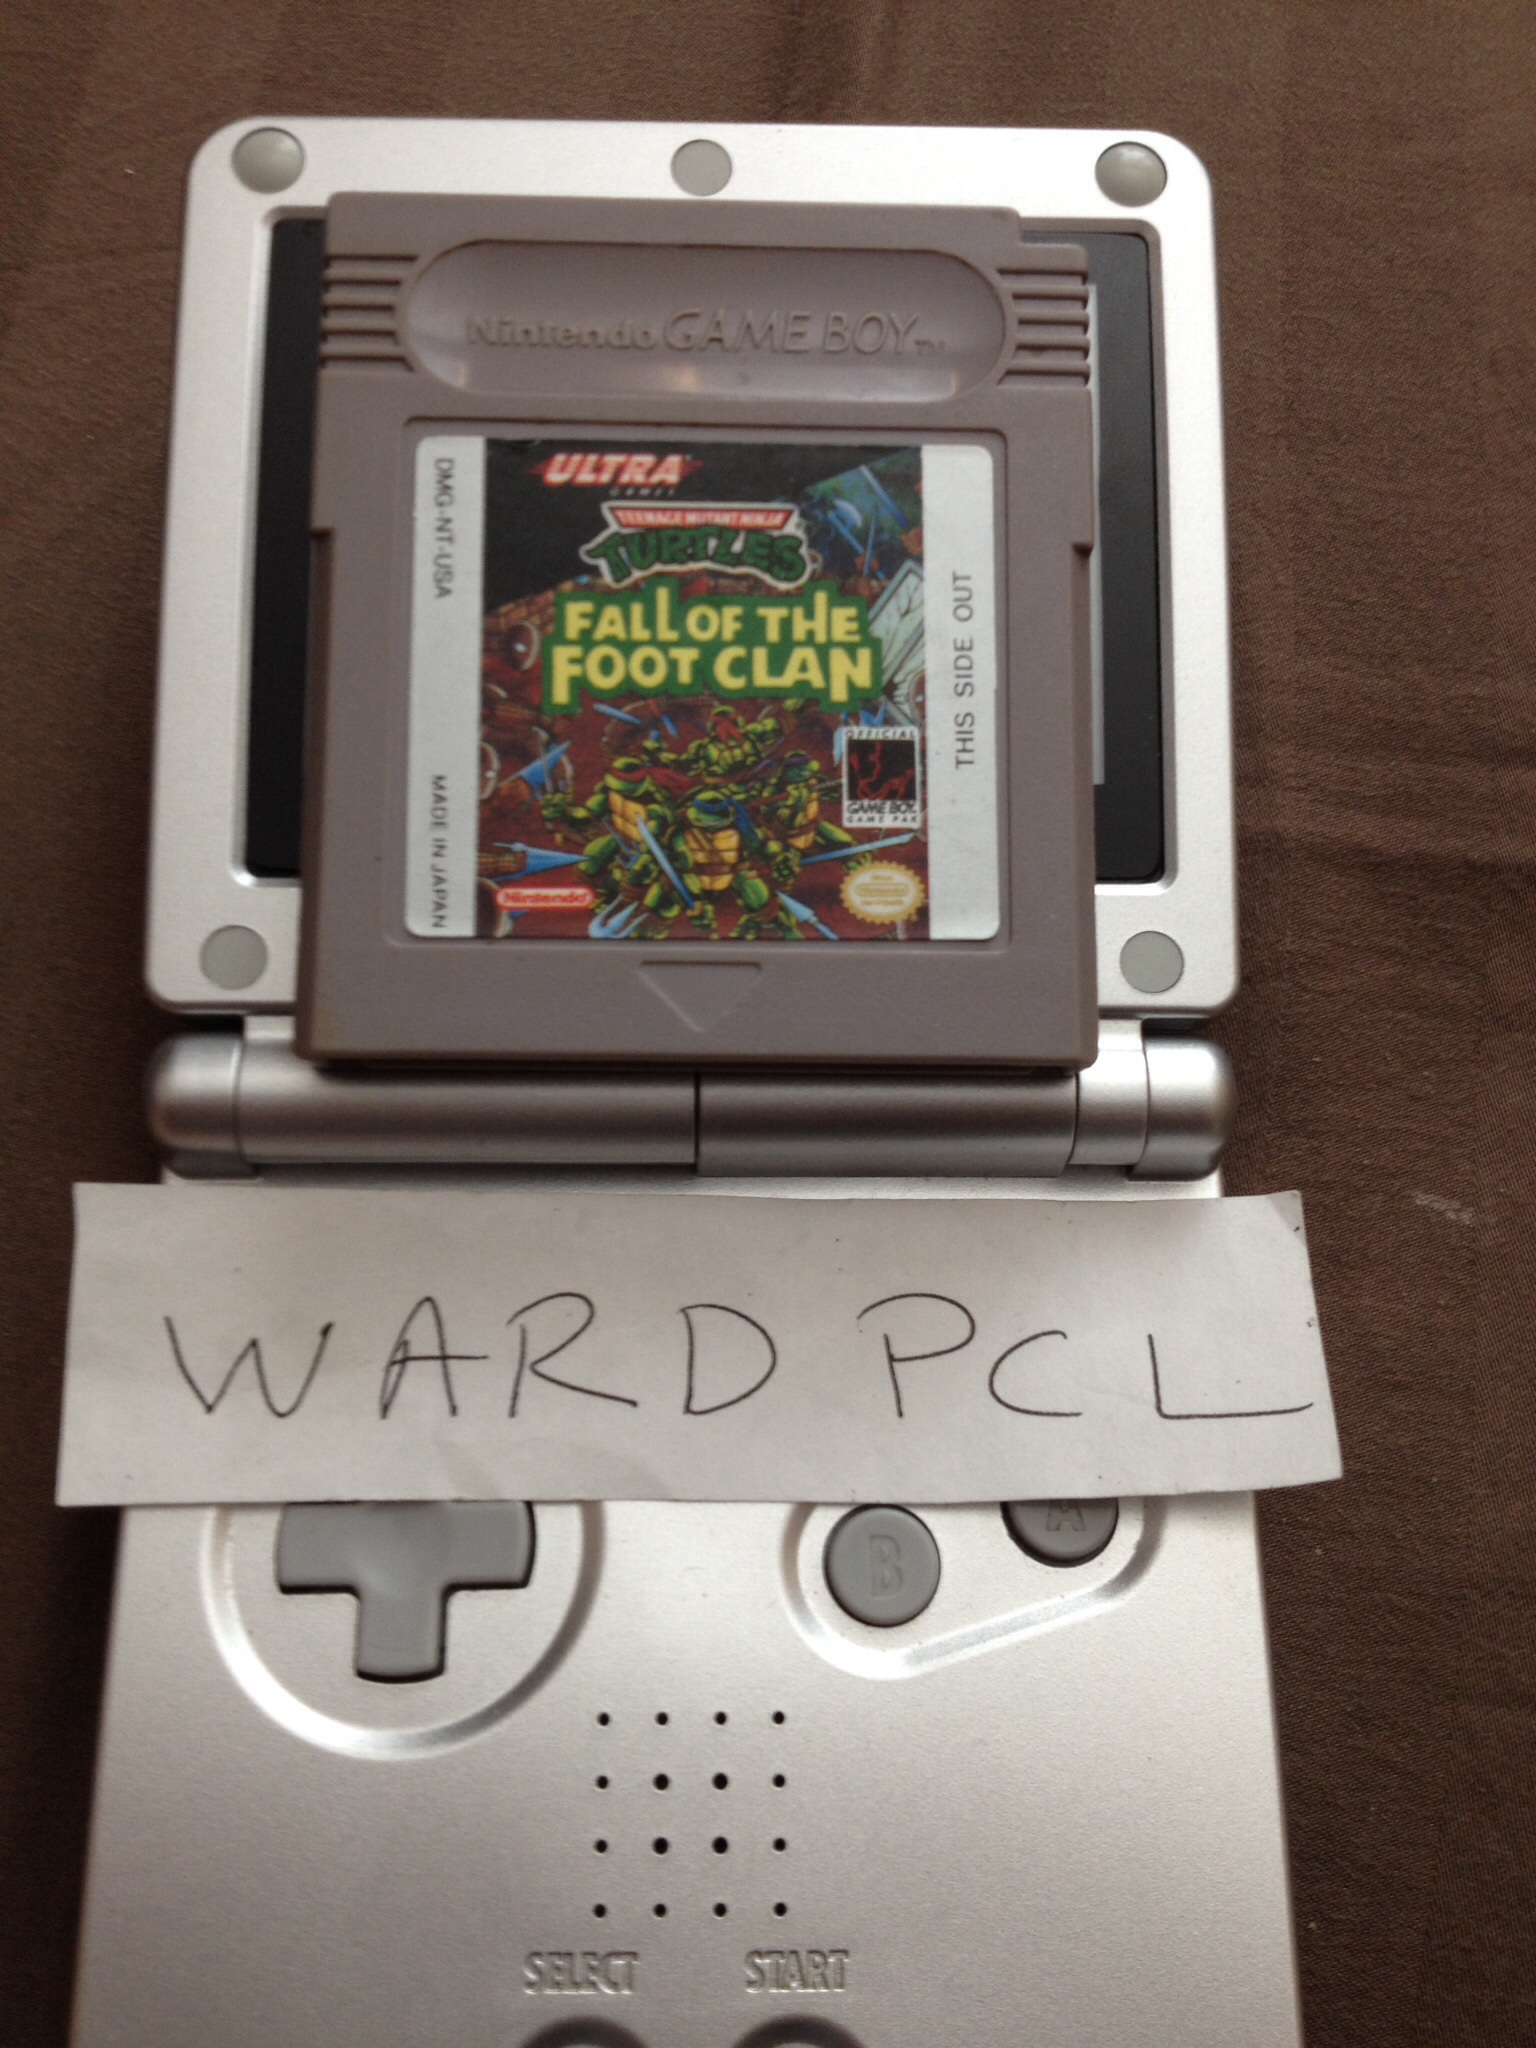 Wardpcl: TMNT: Fall of the Foot Clan (Game Boy) 25,330 points on 2015-07-15 17:15:32